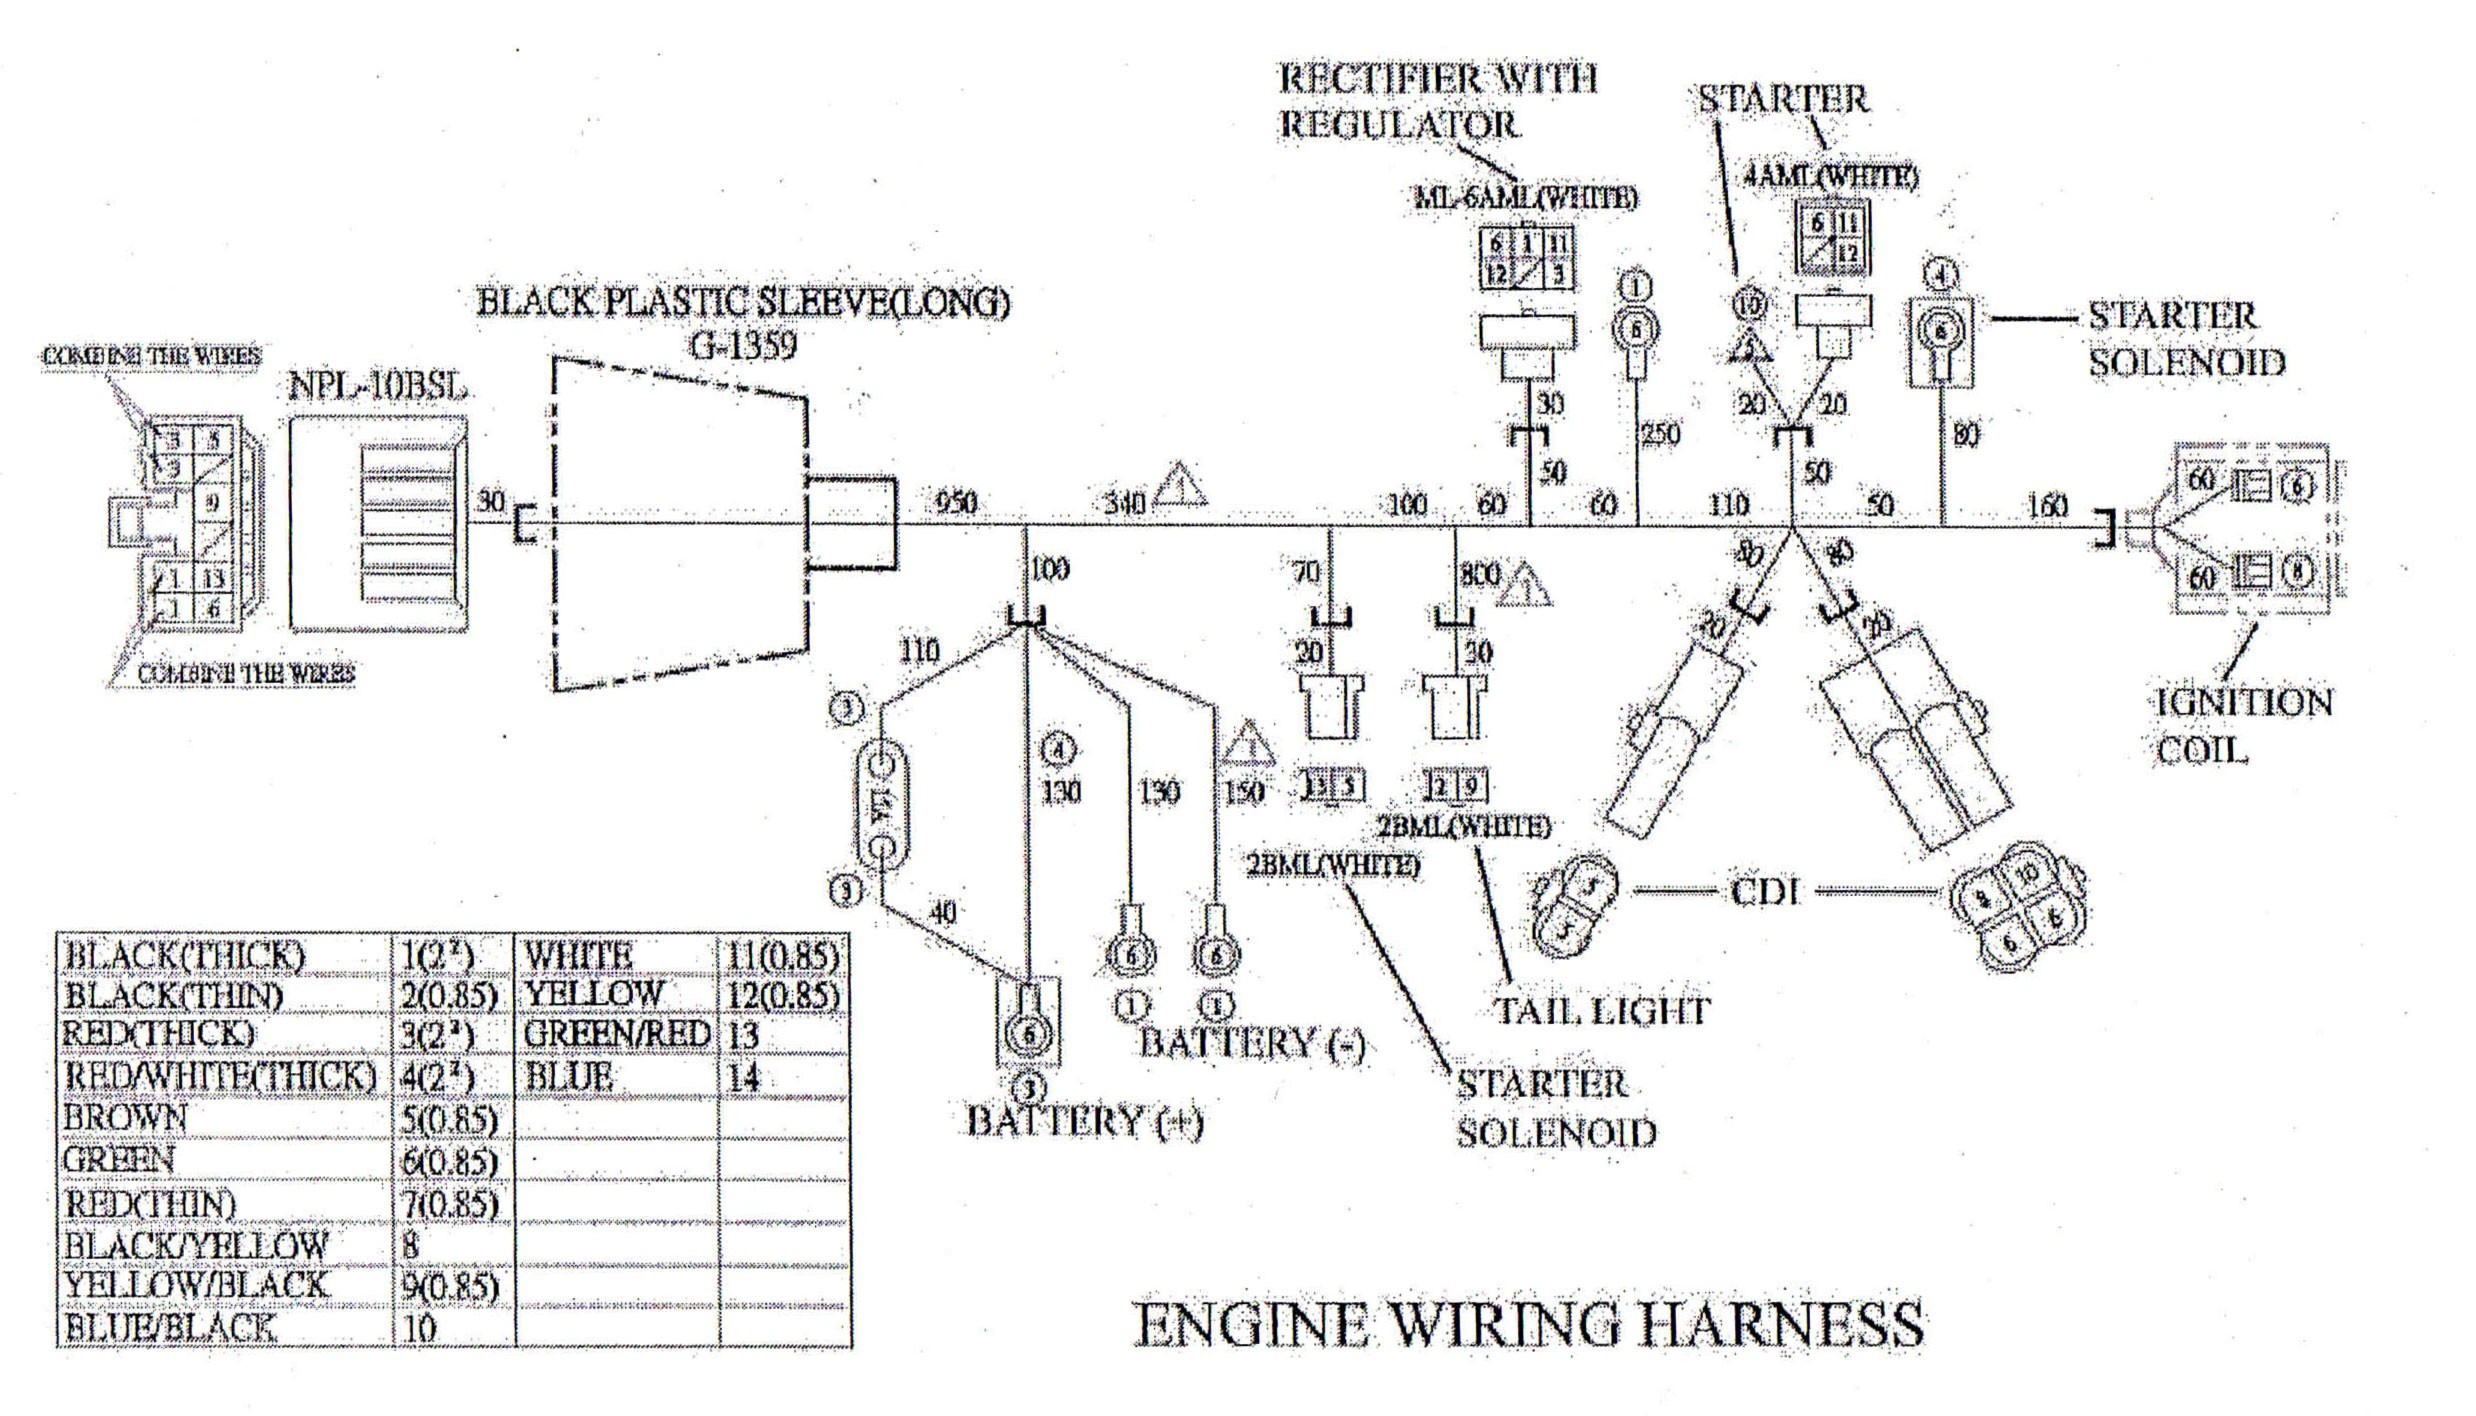 125v Receptacle Wiring Trusted Diagram Split L520 Introduction To Electrical